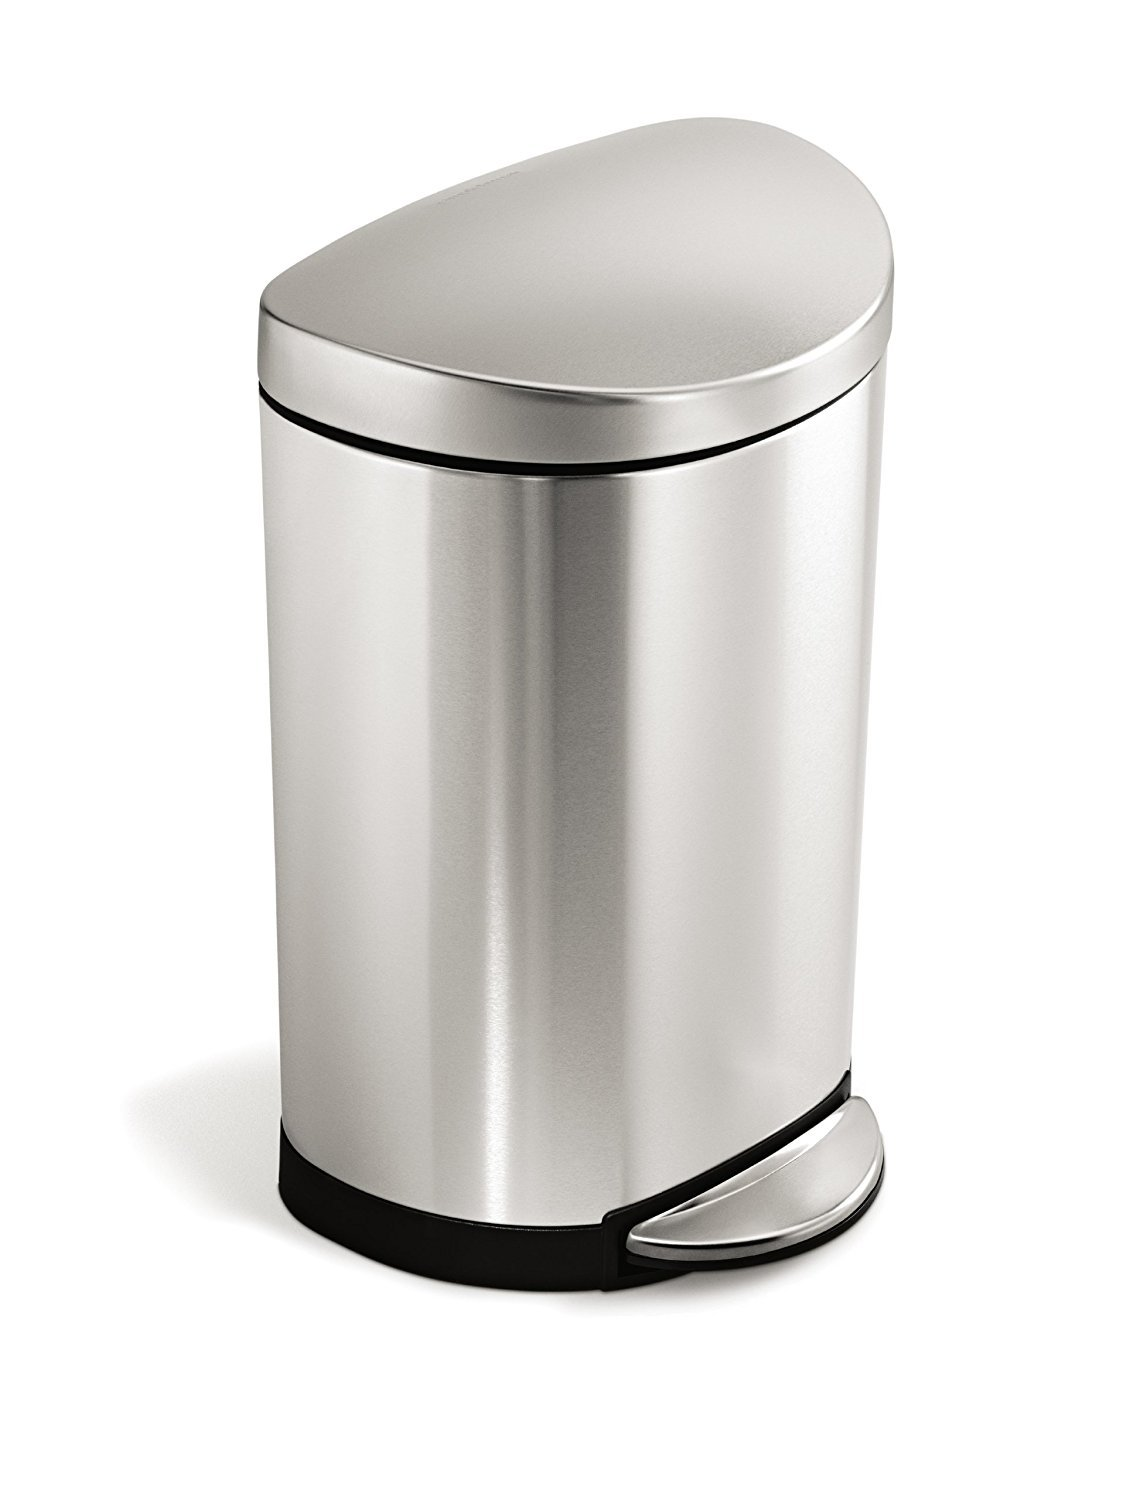 simplehuman Semi-Round Step Trash Can, Stainless Steel, 10 L/2.6 gallon CW1833